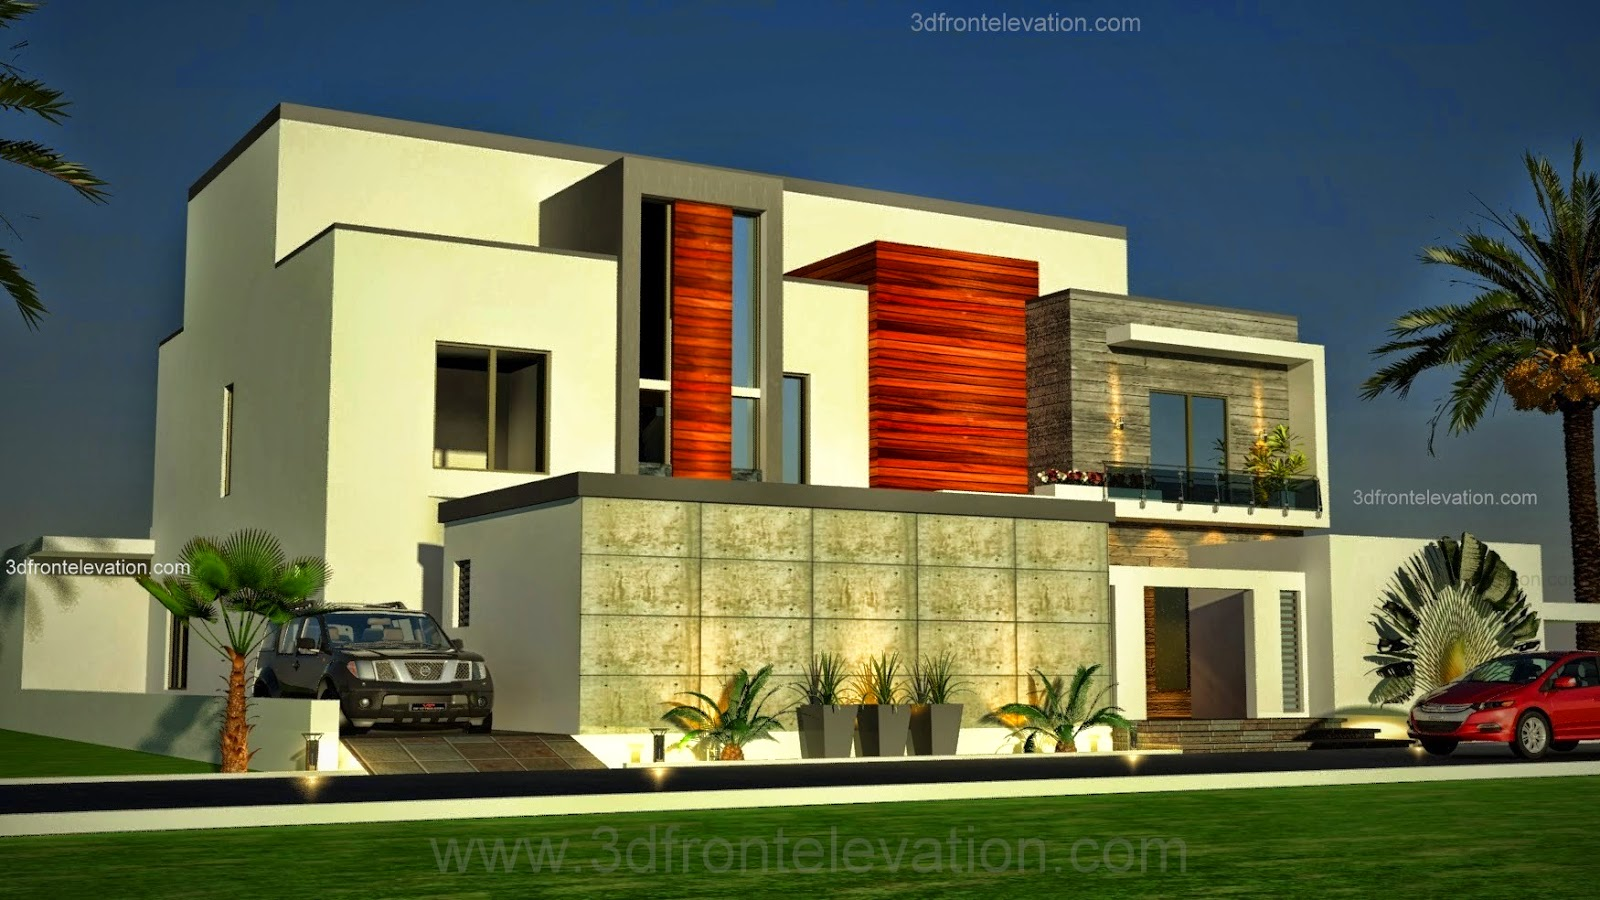 3d Front Elevation Of Houses In Dubai : D front elevation dubai arabian modern contemporary